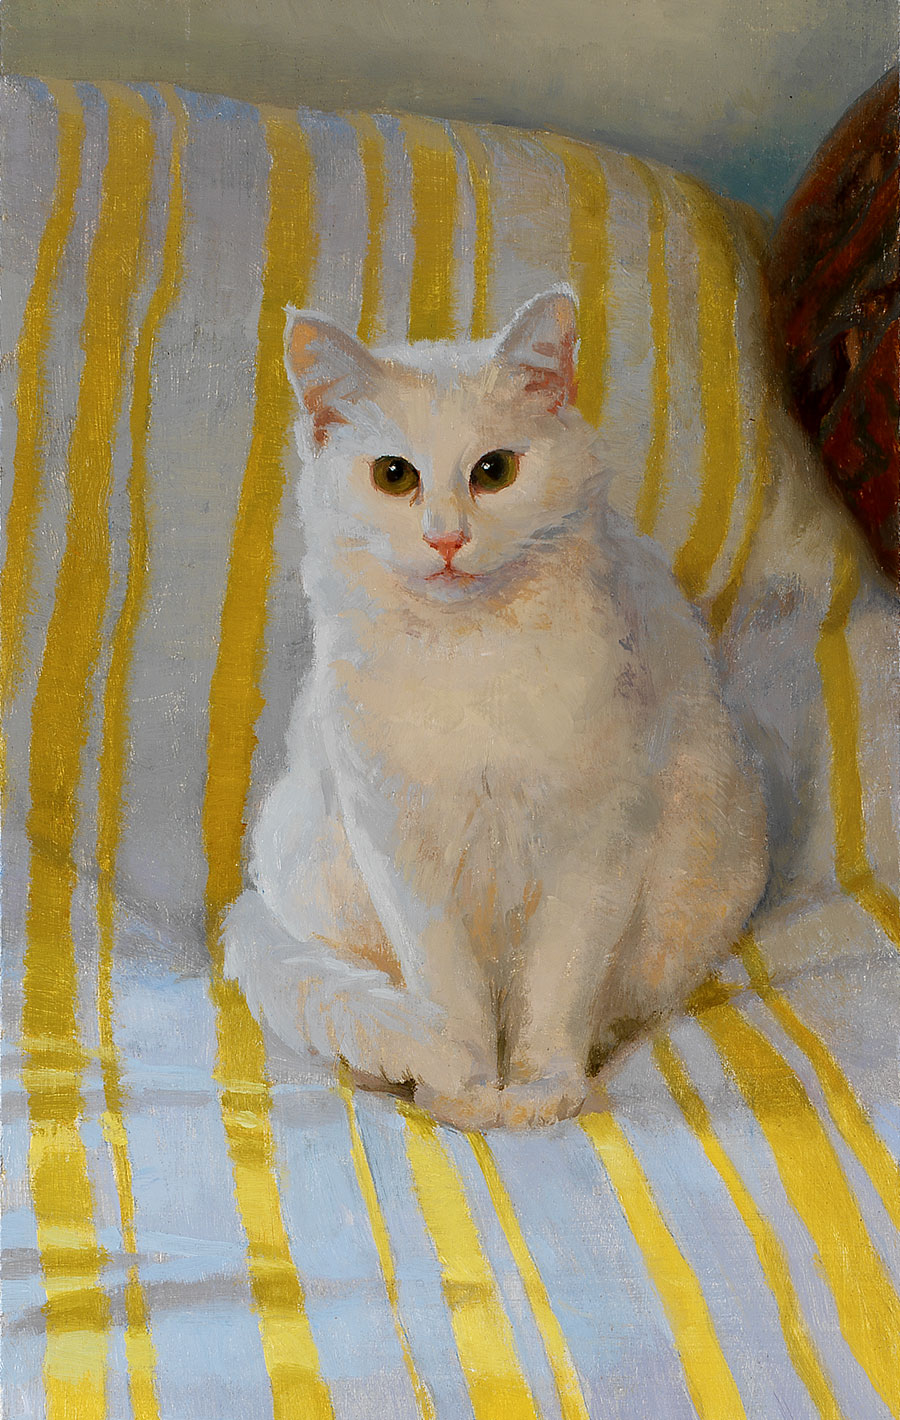 White cat and yellow stripes